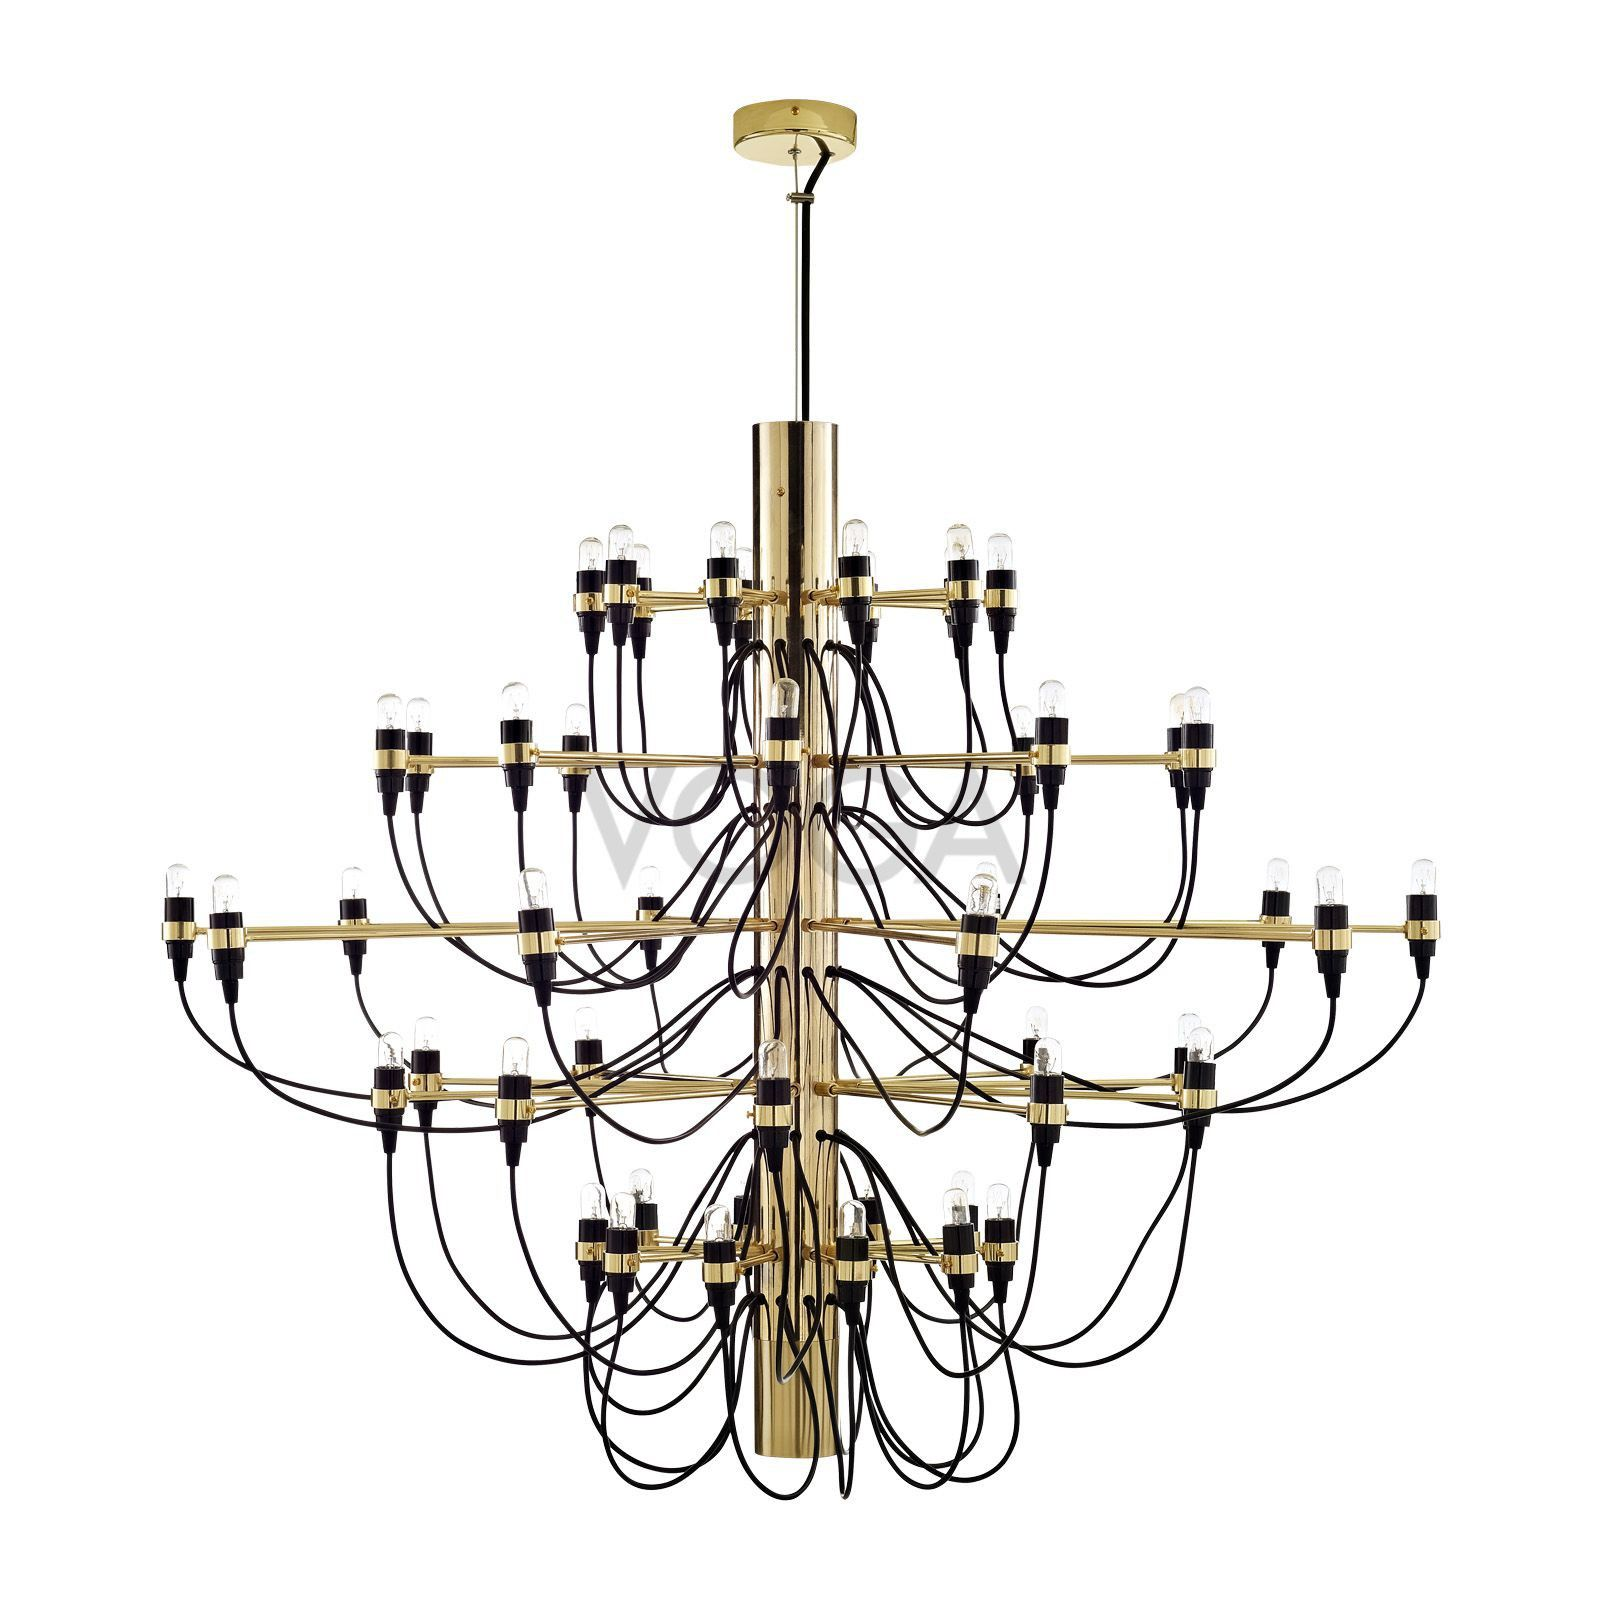 Impressive Design From 1958 Available In Silver Gold And Brass Colours As A 30 Or 50 Light Chandelier Gino Sarfatti Glamorous